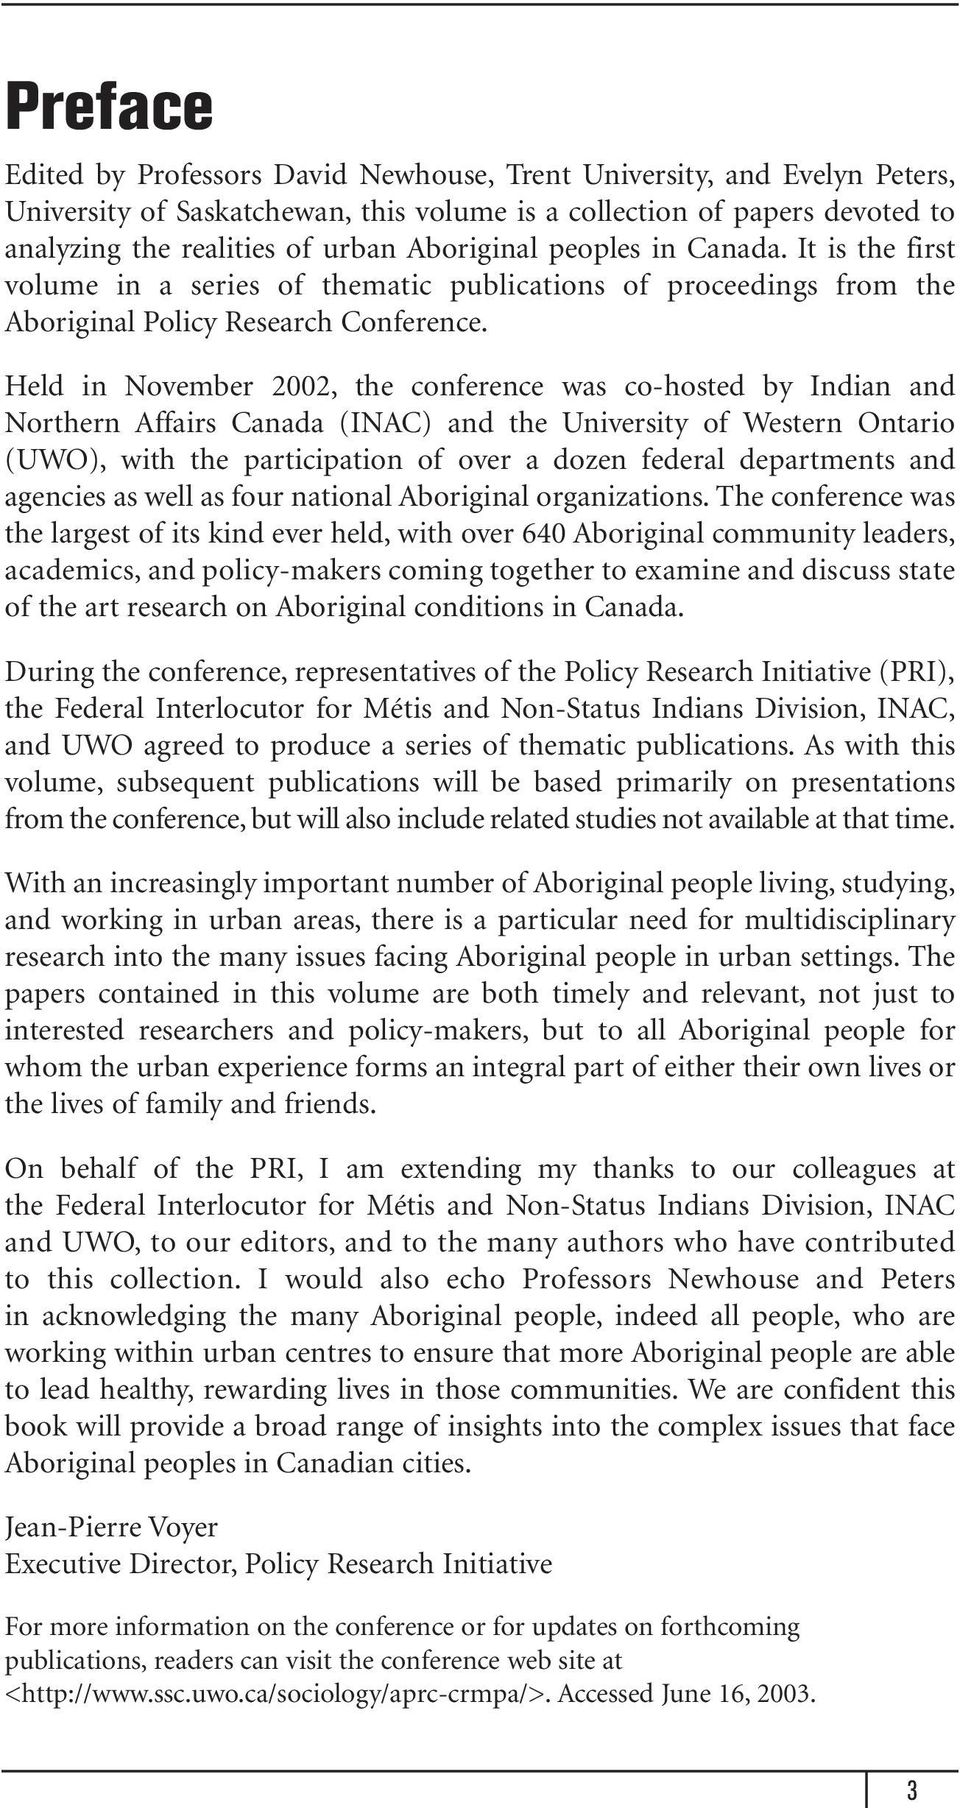 Held in November 2002, the conference was co-hosted by Indian and Northern Affairs Canada (INAC) and the University of Western Ontario (UWO), with the participation of over a dozen federal